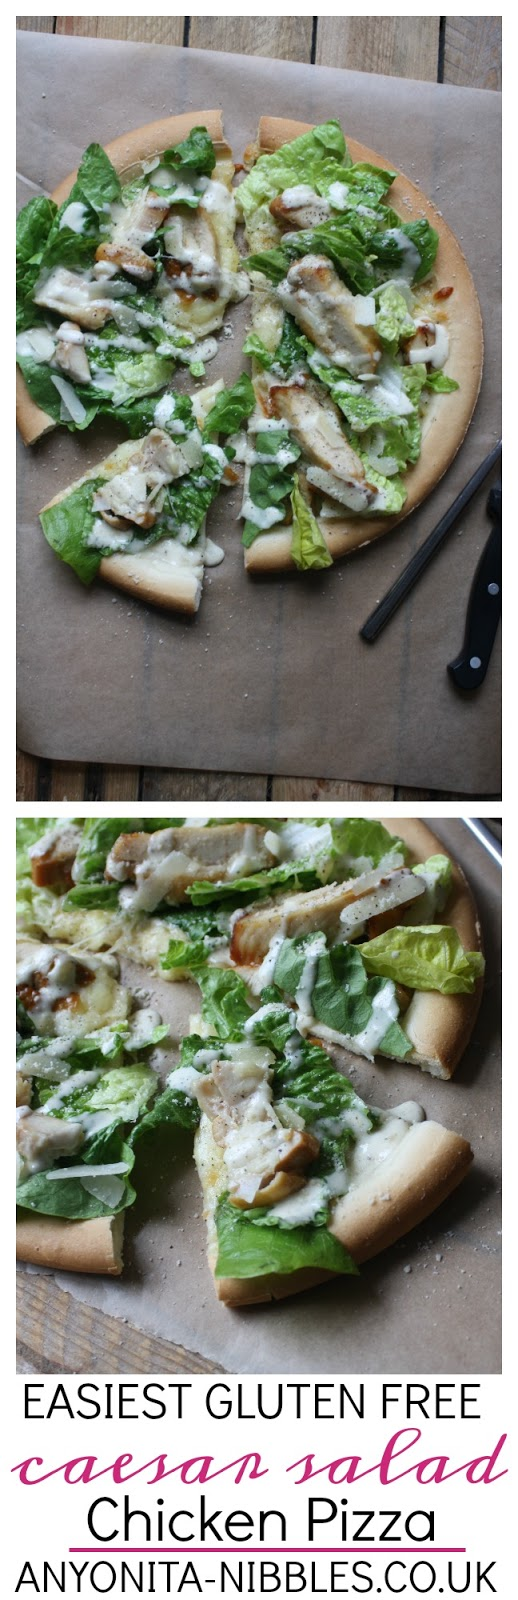 Gluten Free Chicken Caesar Salad Pizza on Anyonita-Nibbles